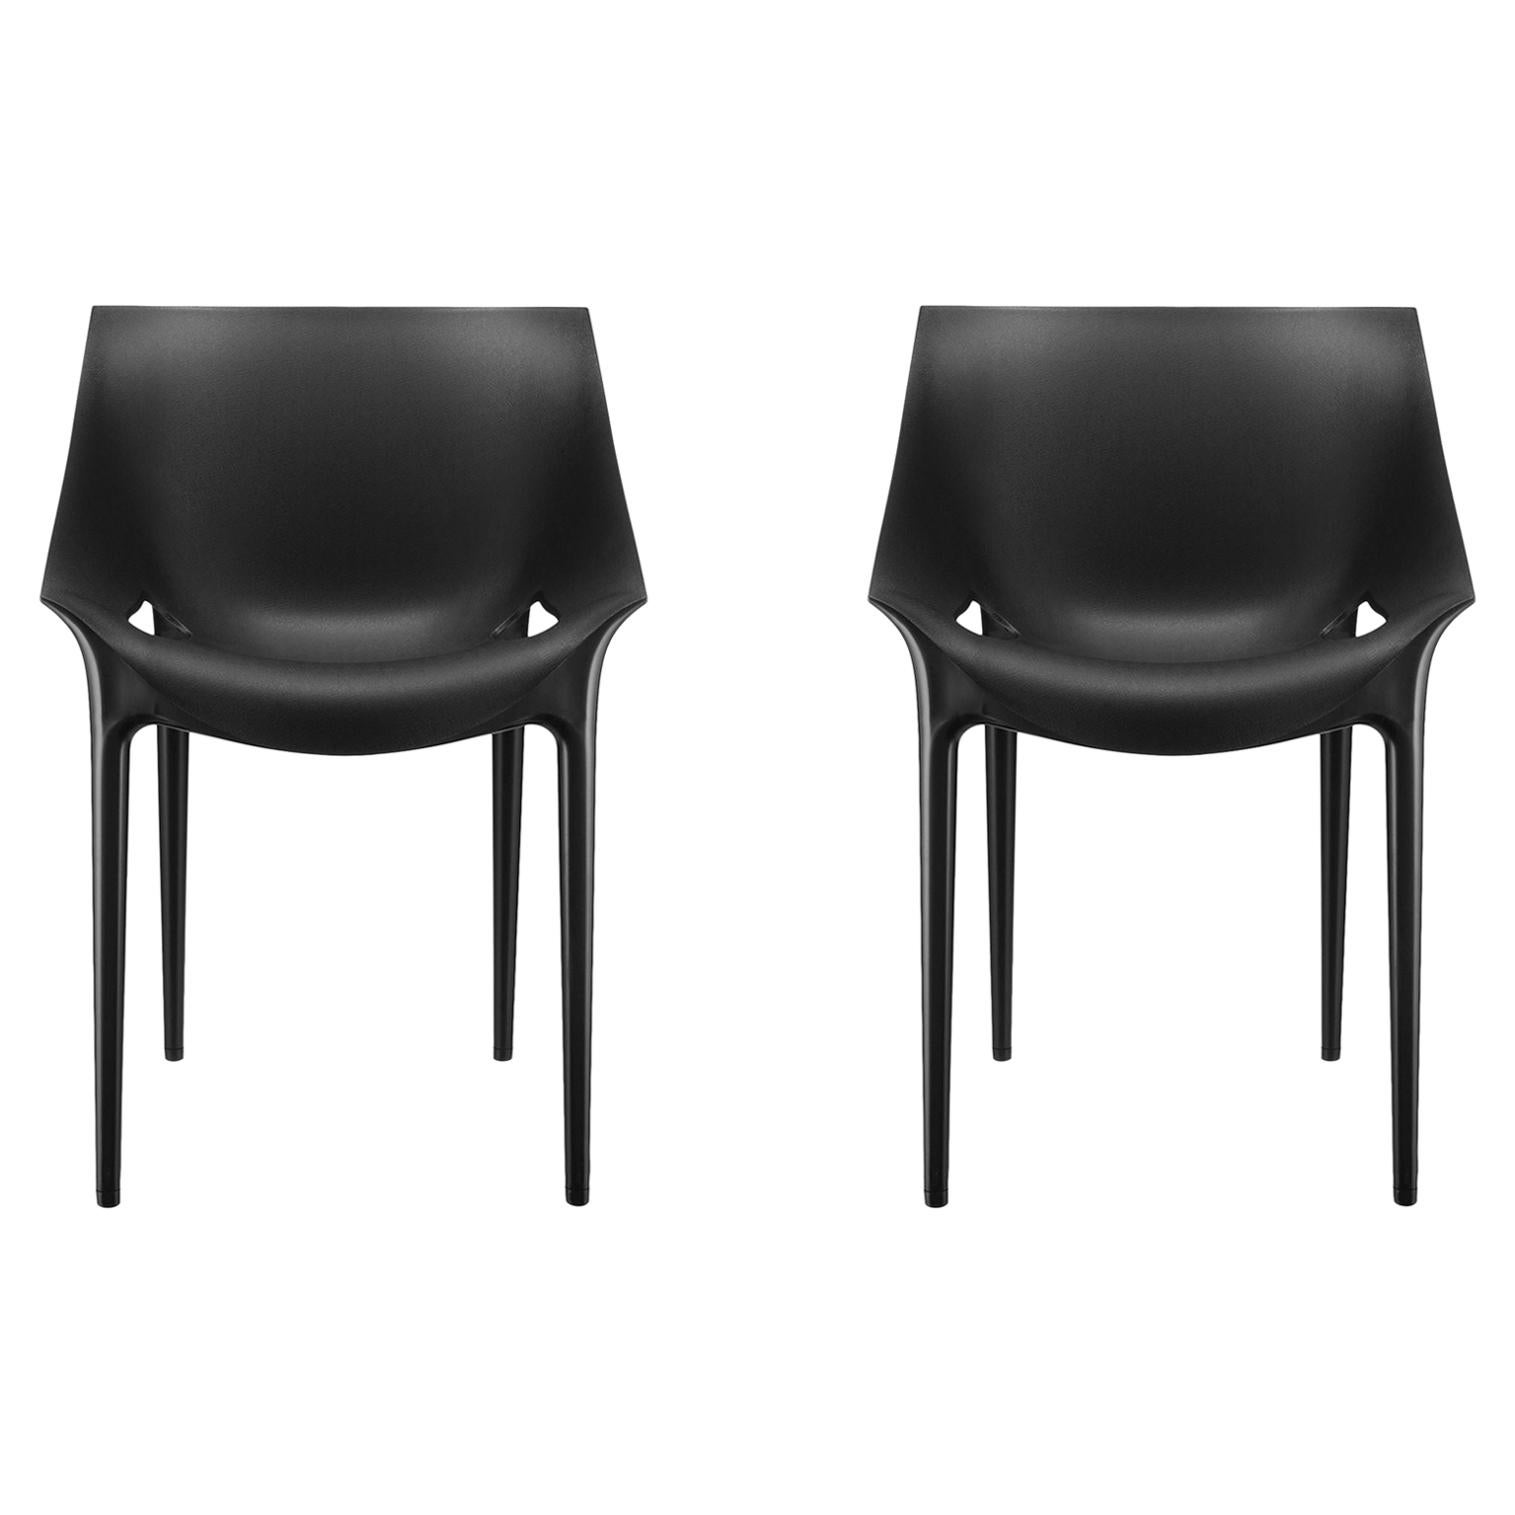 Set of 2 Kartell Dr. Yes Chairs in Black by Philippe Starck & Eugeni Quitllet